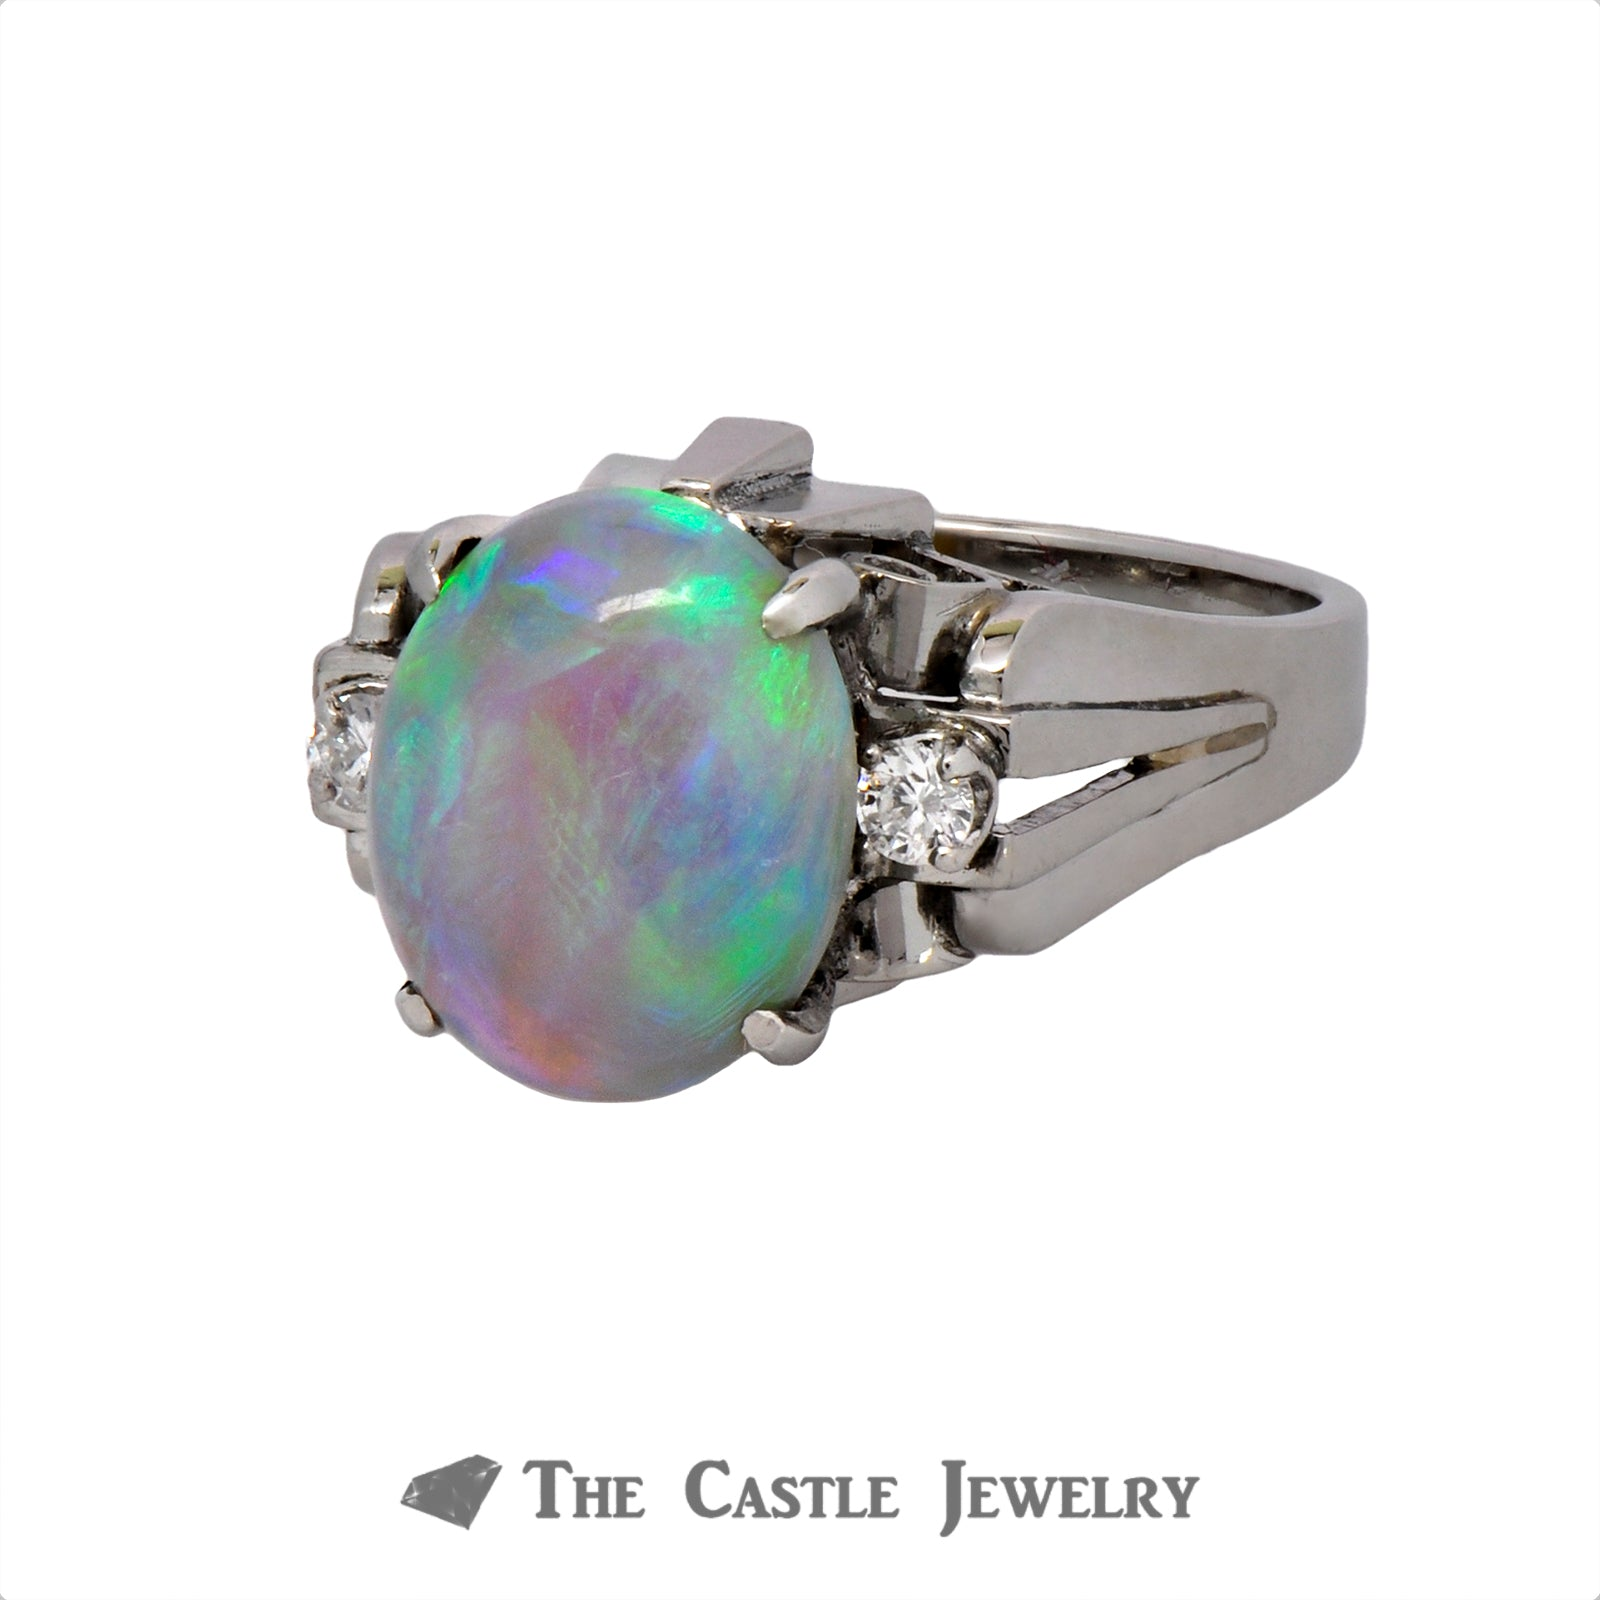 Vintage Opal Ring with Diamond Accents Crafted in a Platinum Cathedral Mounting-2